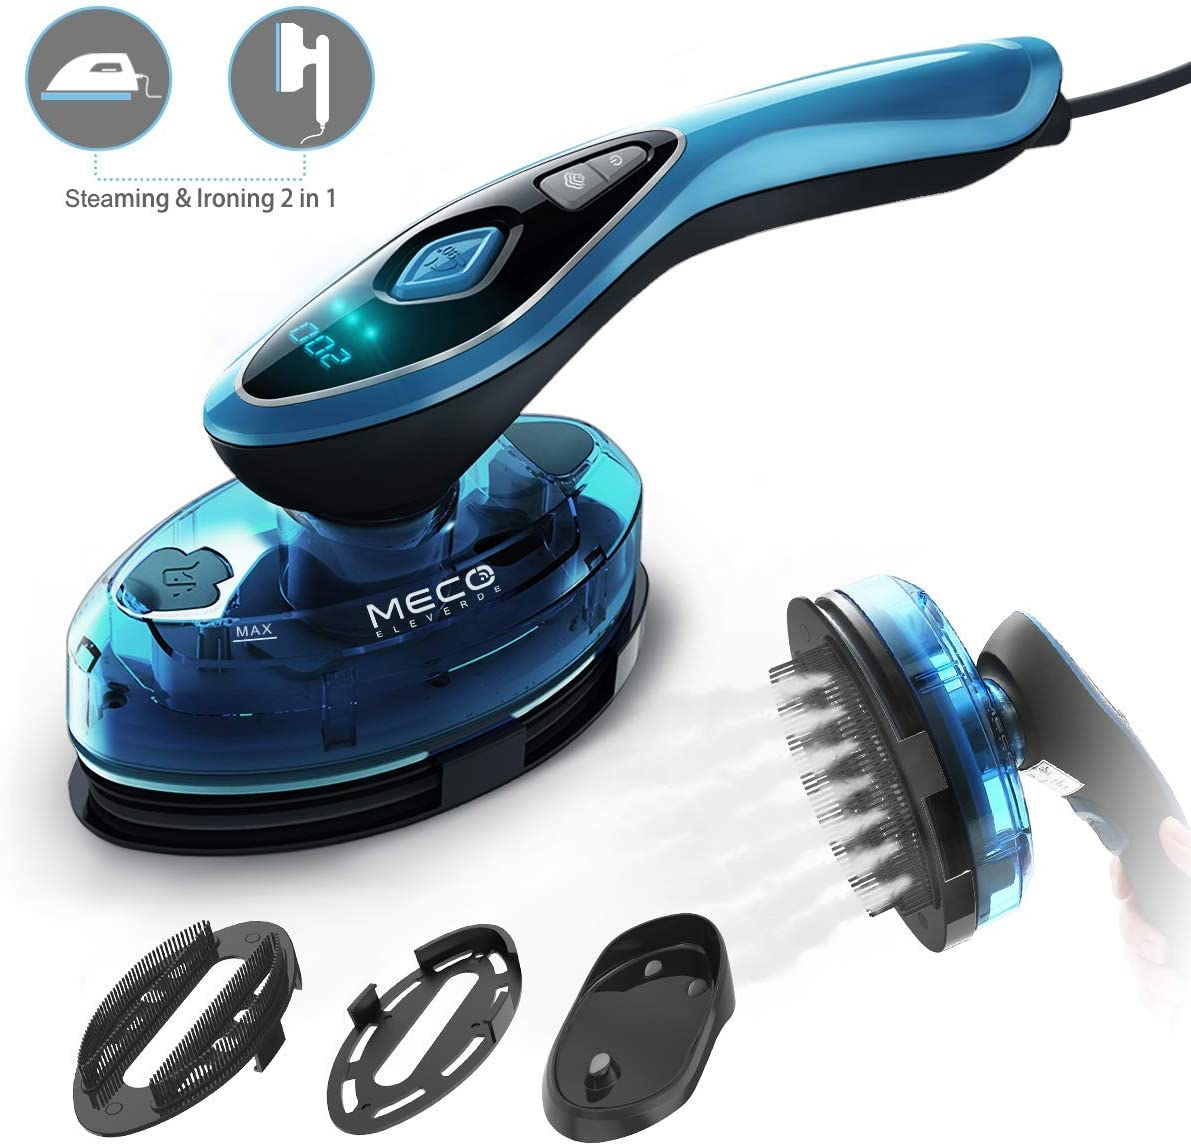 MECO ELEVERDE Clothes Steamer 1500W image 1